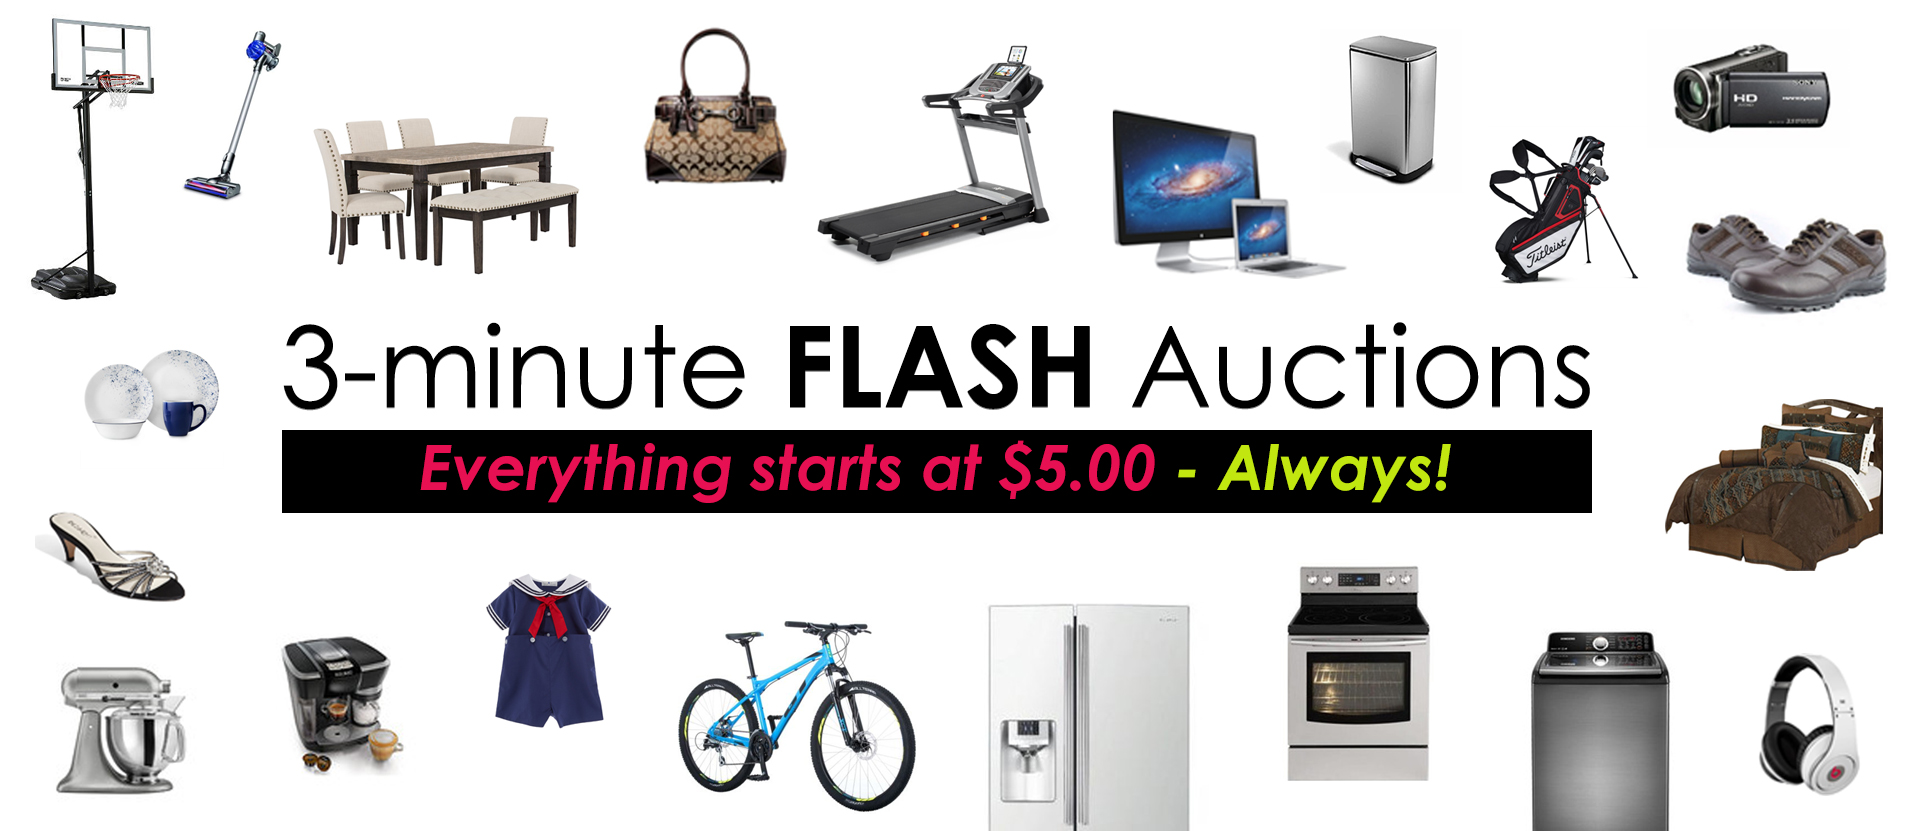 3-minute Flash Auctions